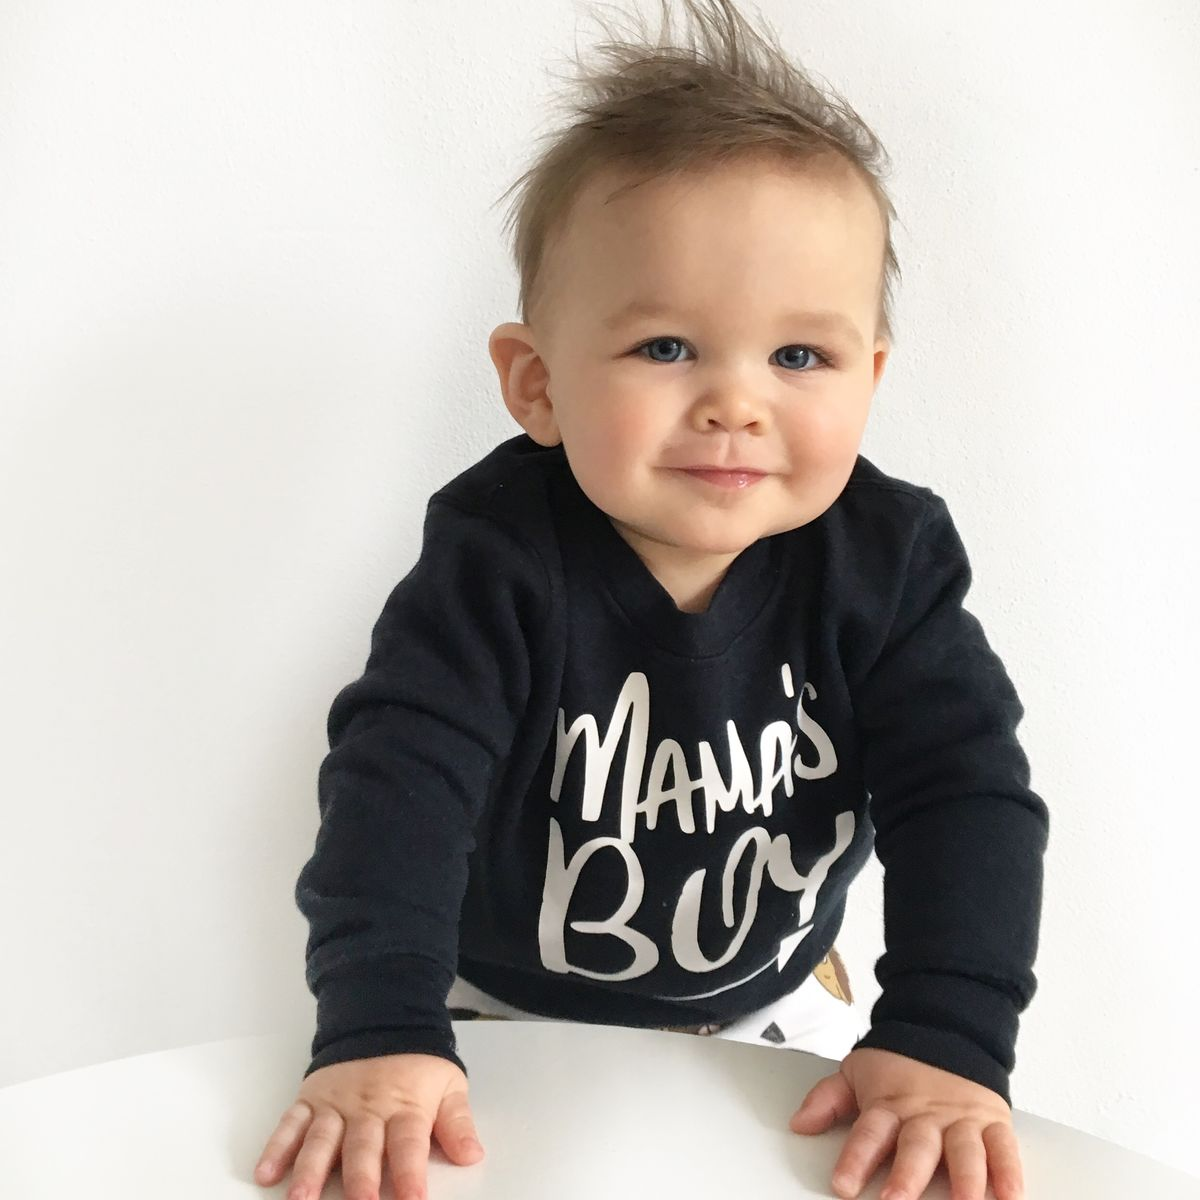 'Mama's Boy' Kids Sweatshirt (various sizes) - product images  of